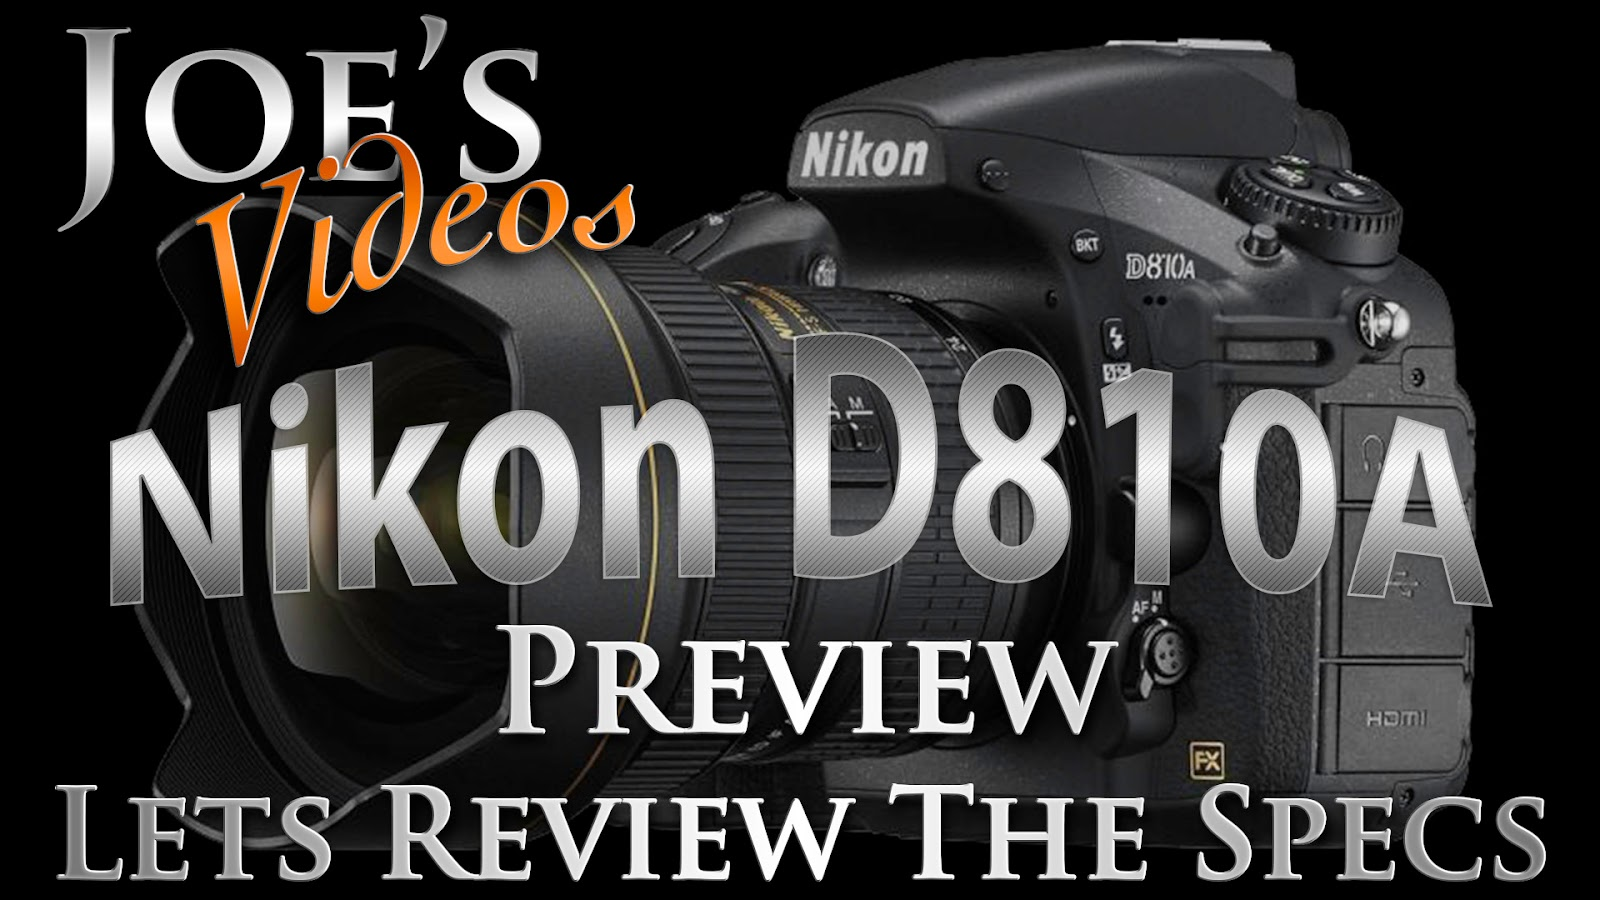 Nikon D810A Digital SLR Preview, Lets Review The Specs | Joe's Videos